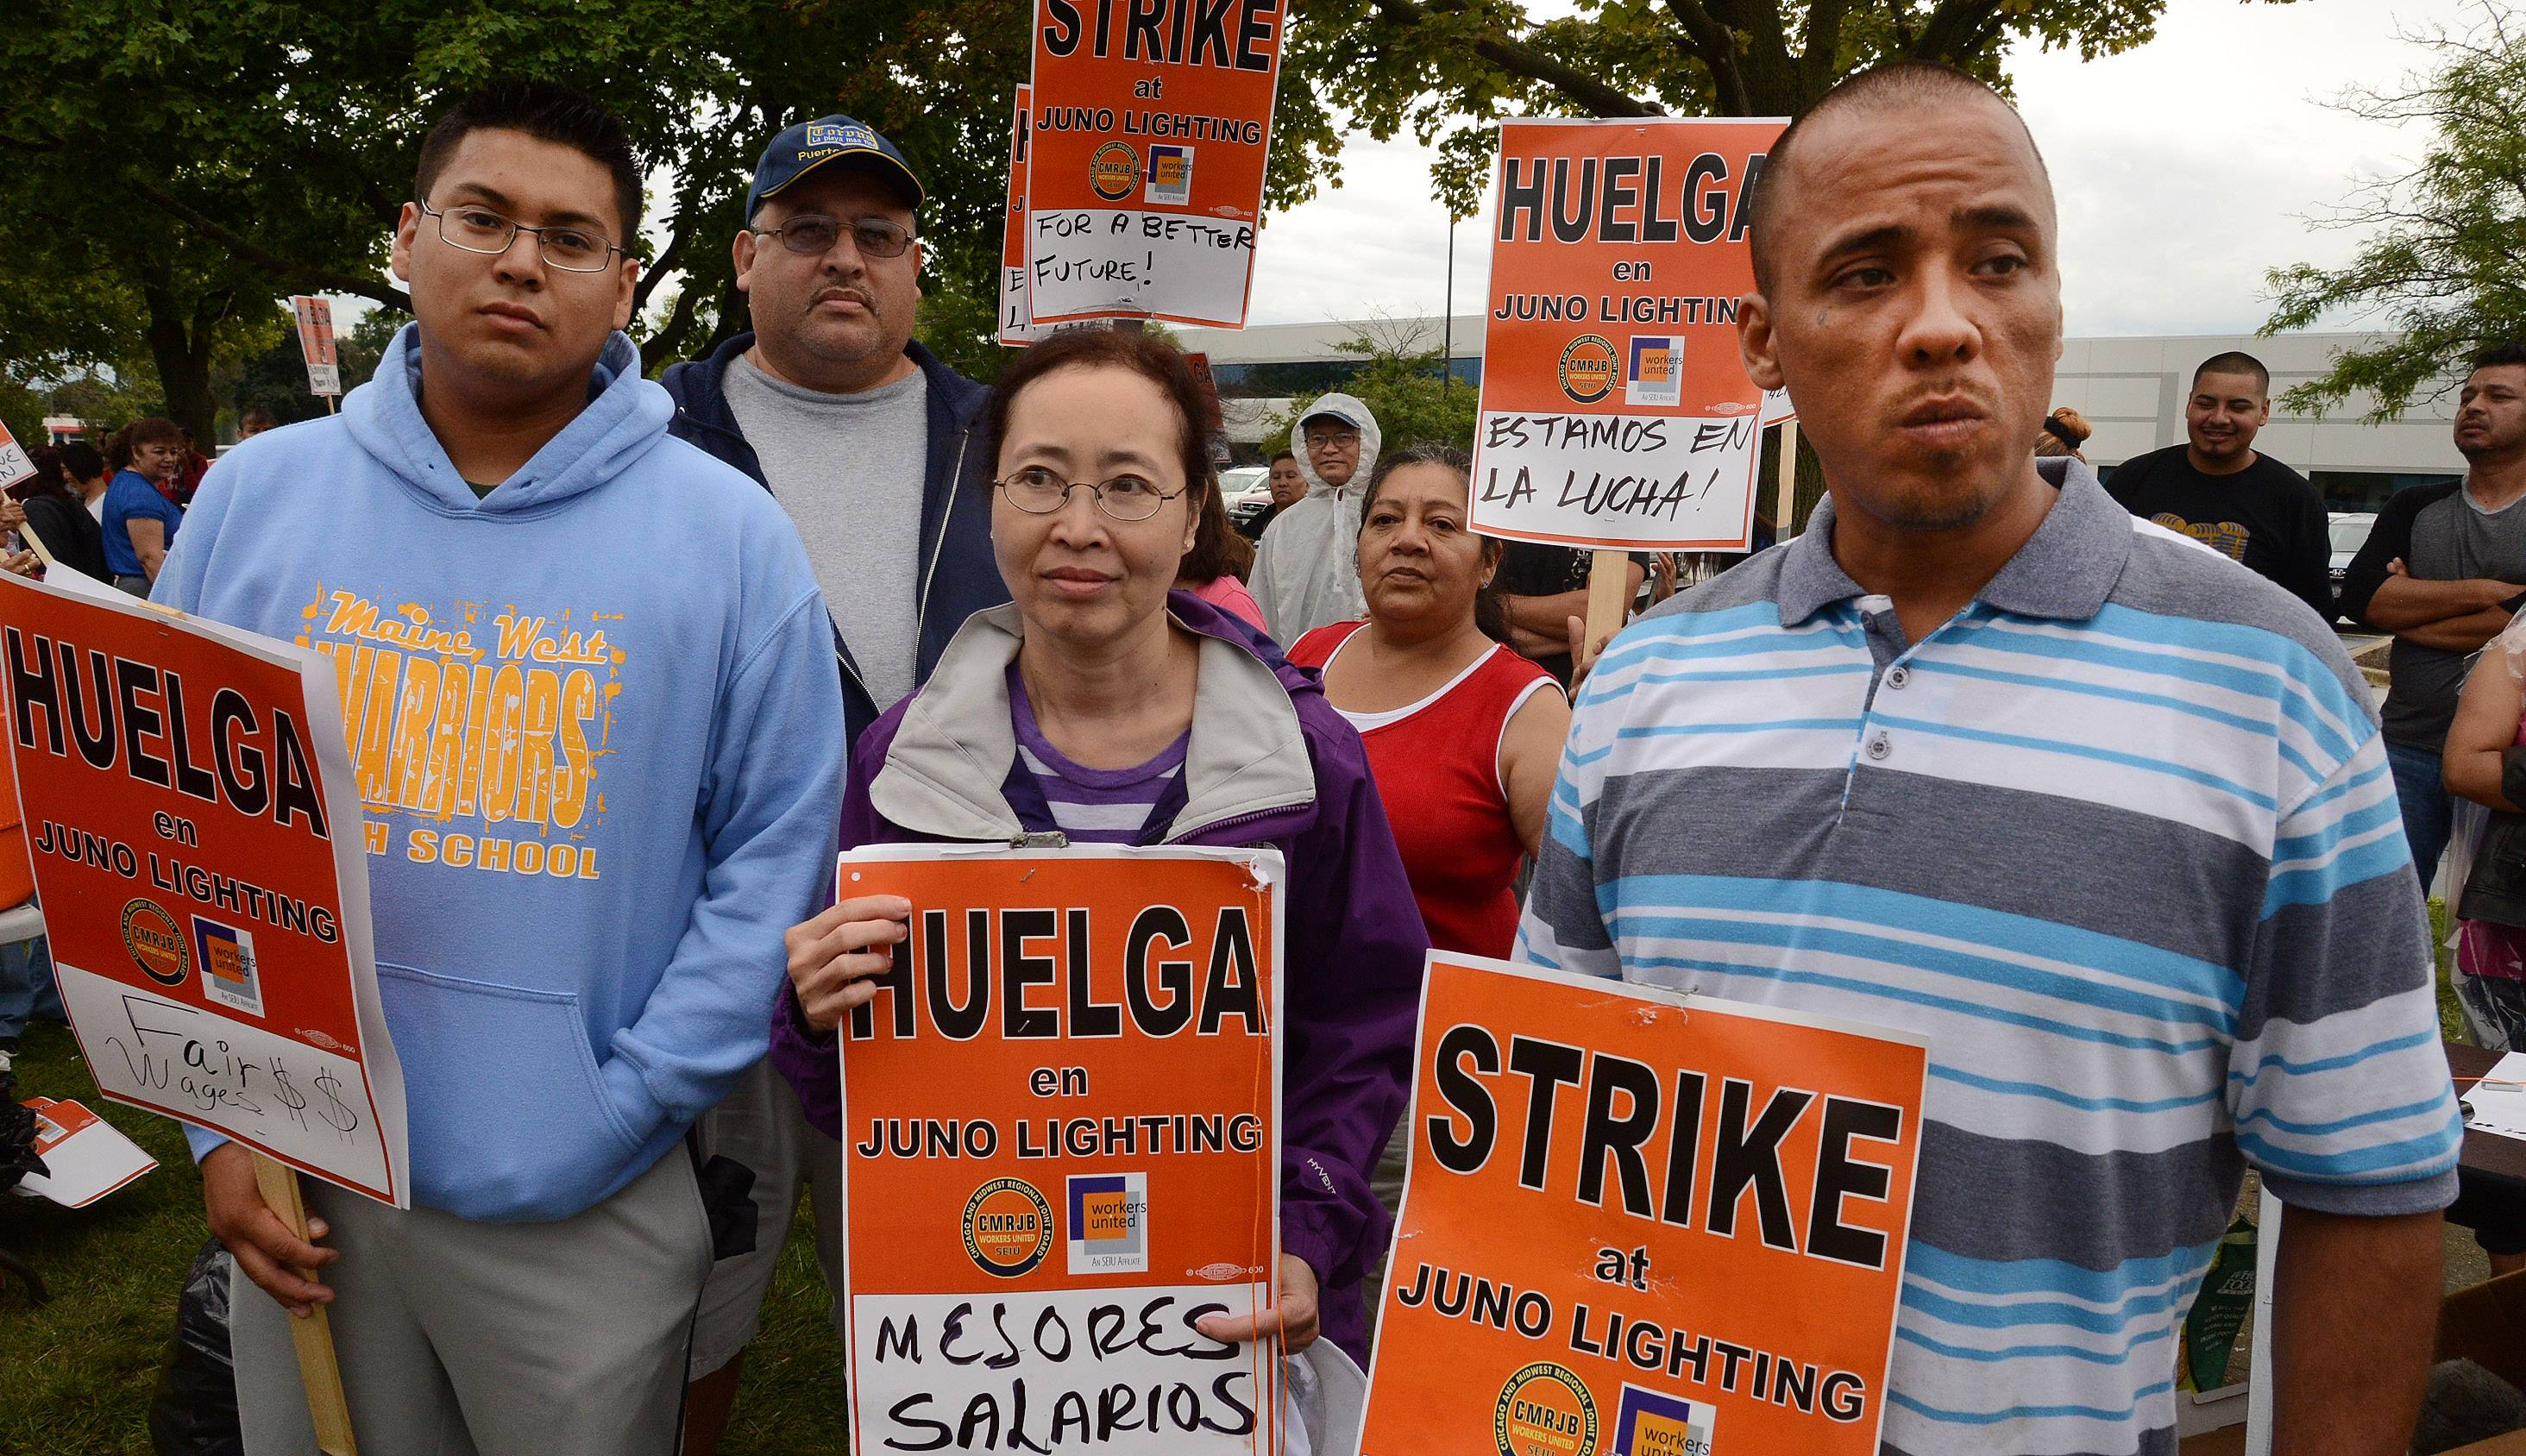 From left, Felipe Delgado, Des Plaines, Tuyet Huynh, Chicago, and Malaquias Gutierrez, Chicago, workers on strike outside Juno Lighting in Des Plaines.